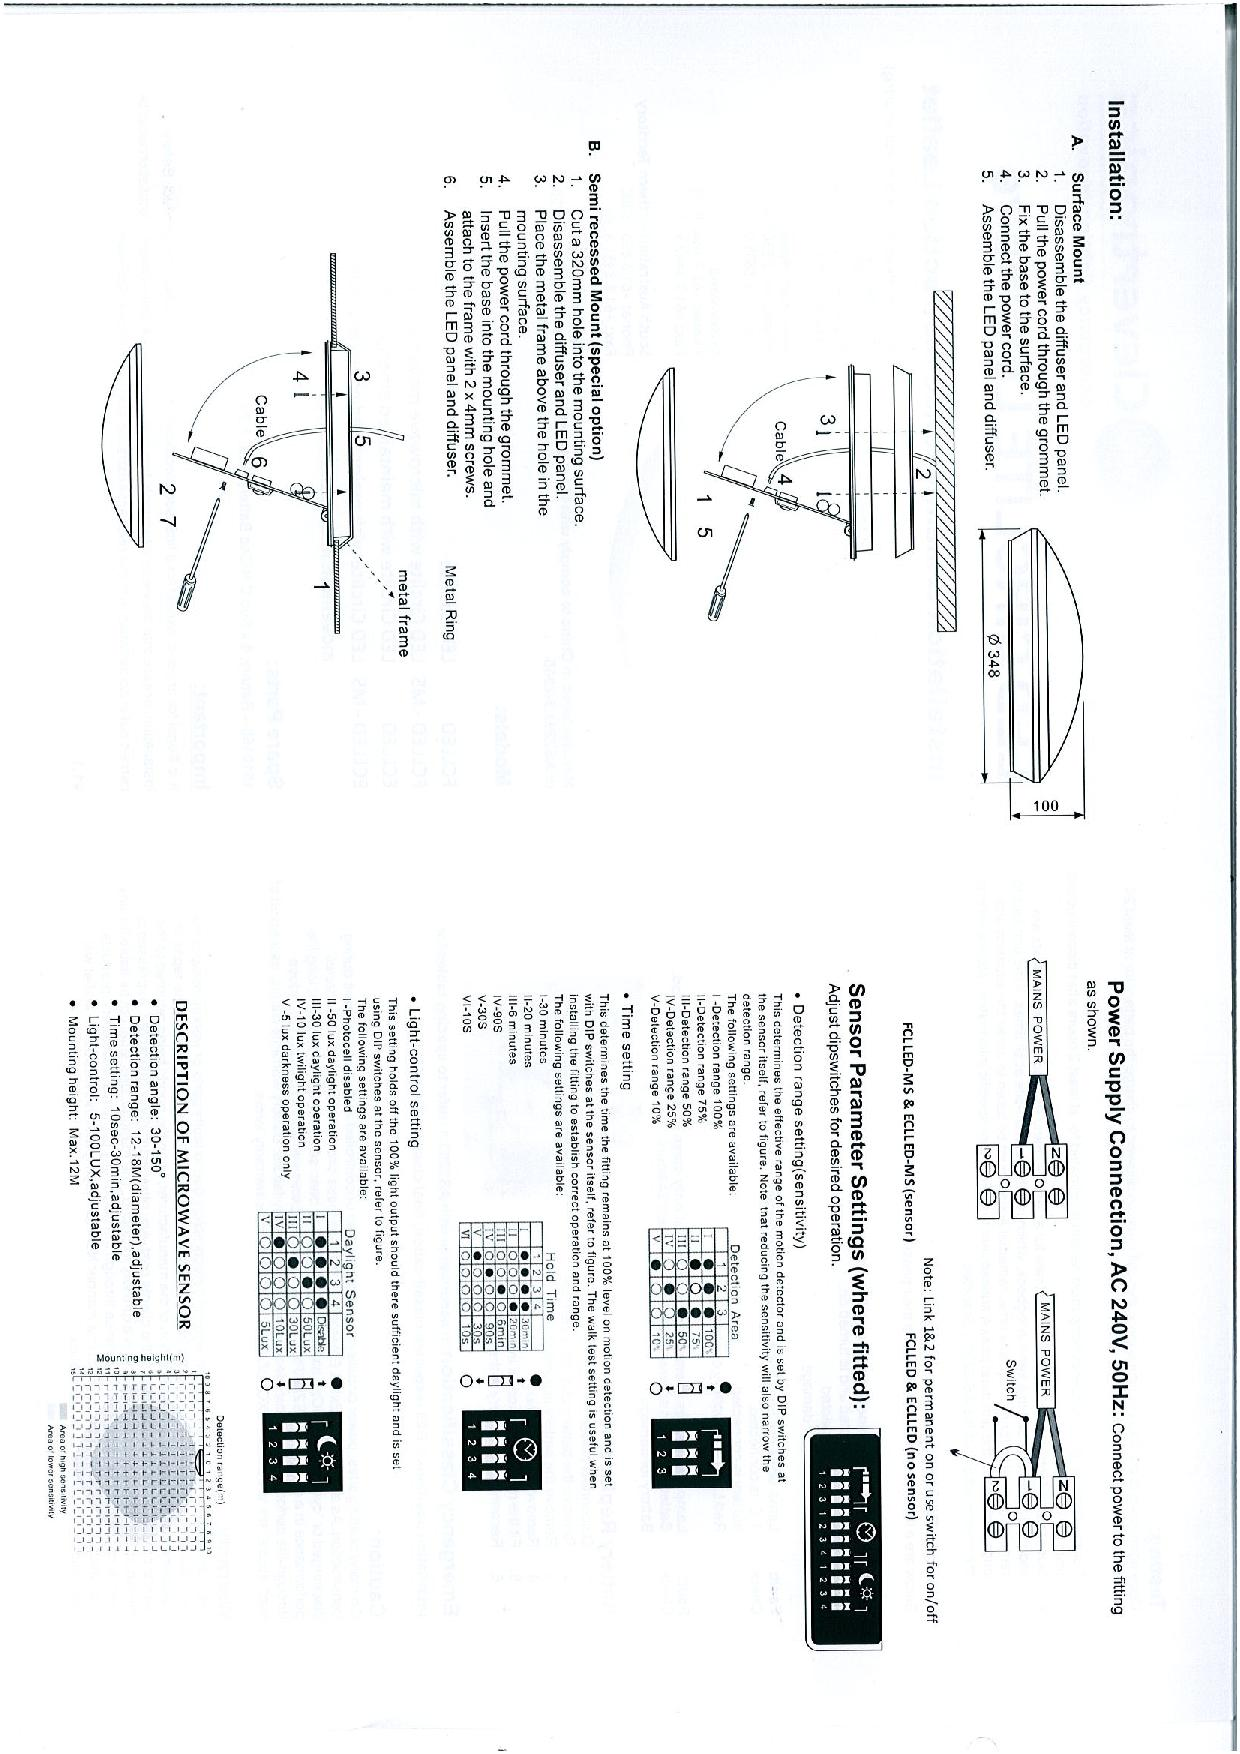 LED_Circular_Installation___Maintenance_Instruction_Leaflet page 002139831610253589c465e62a?t=1506693508 clevertronics 17 5w led emergency oyster nhp emergency light test kit wiring diagram at edmiracle.co